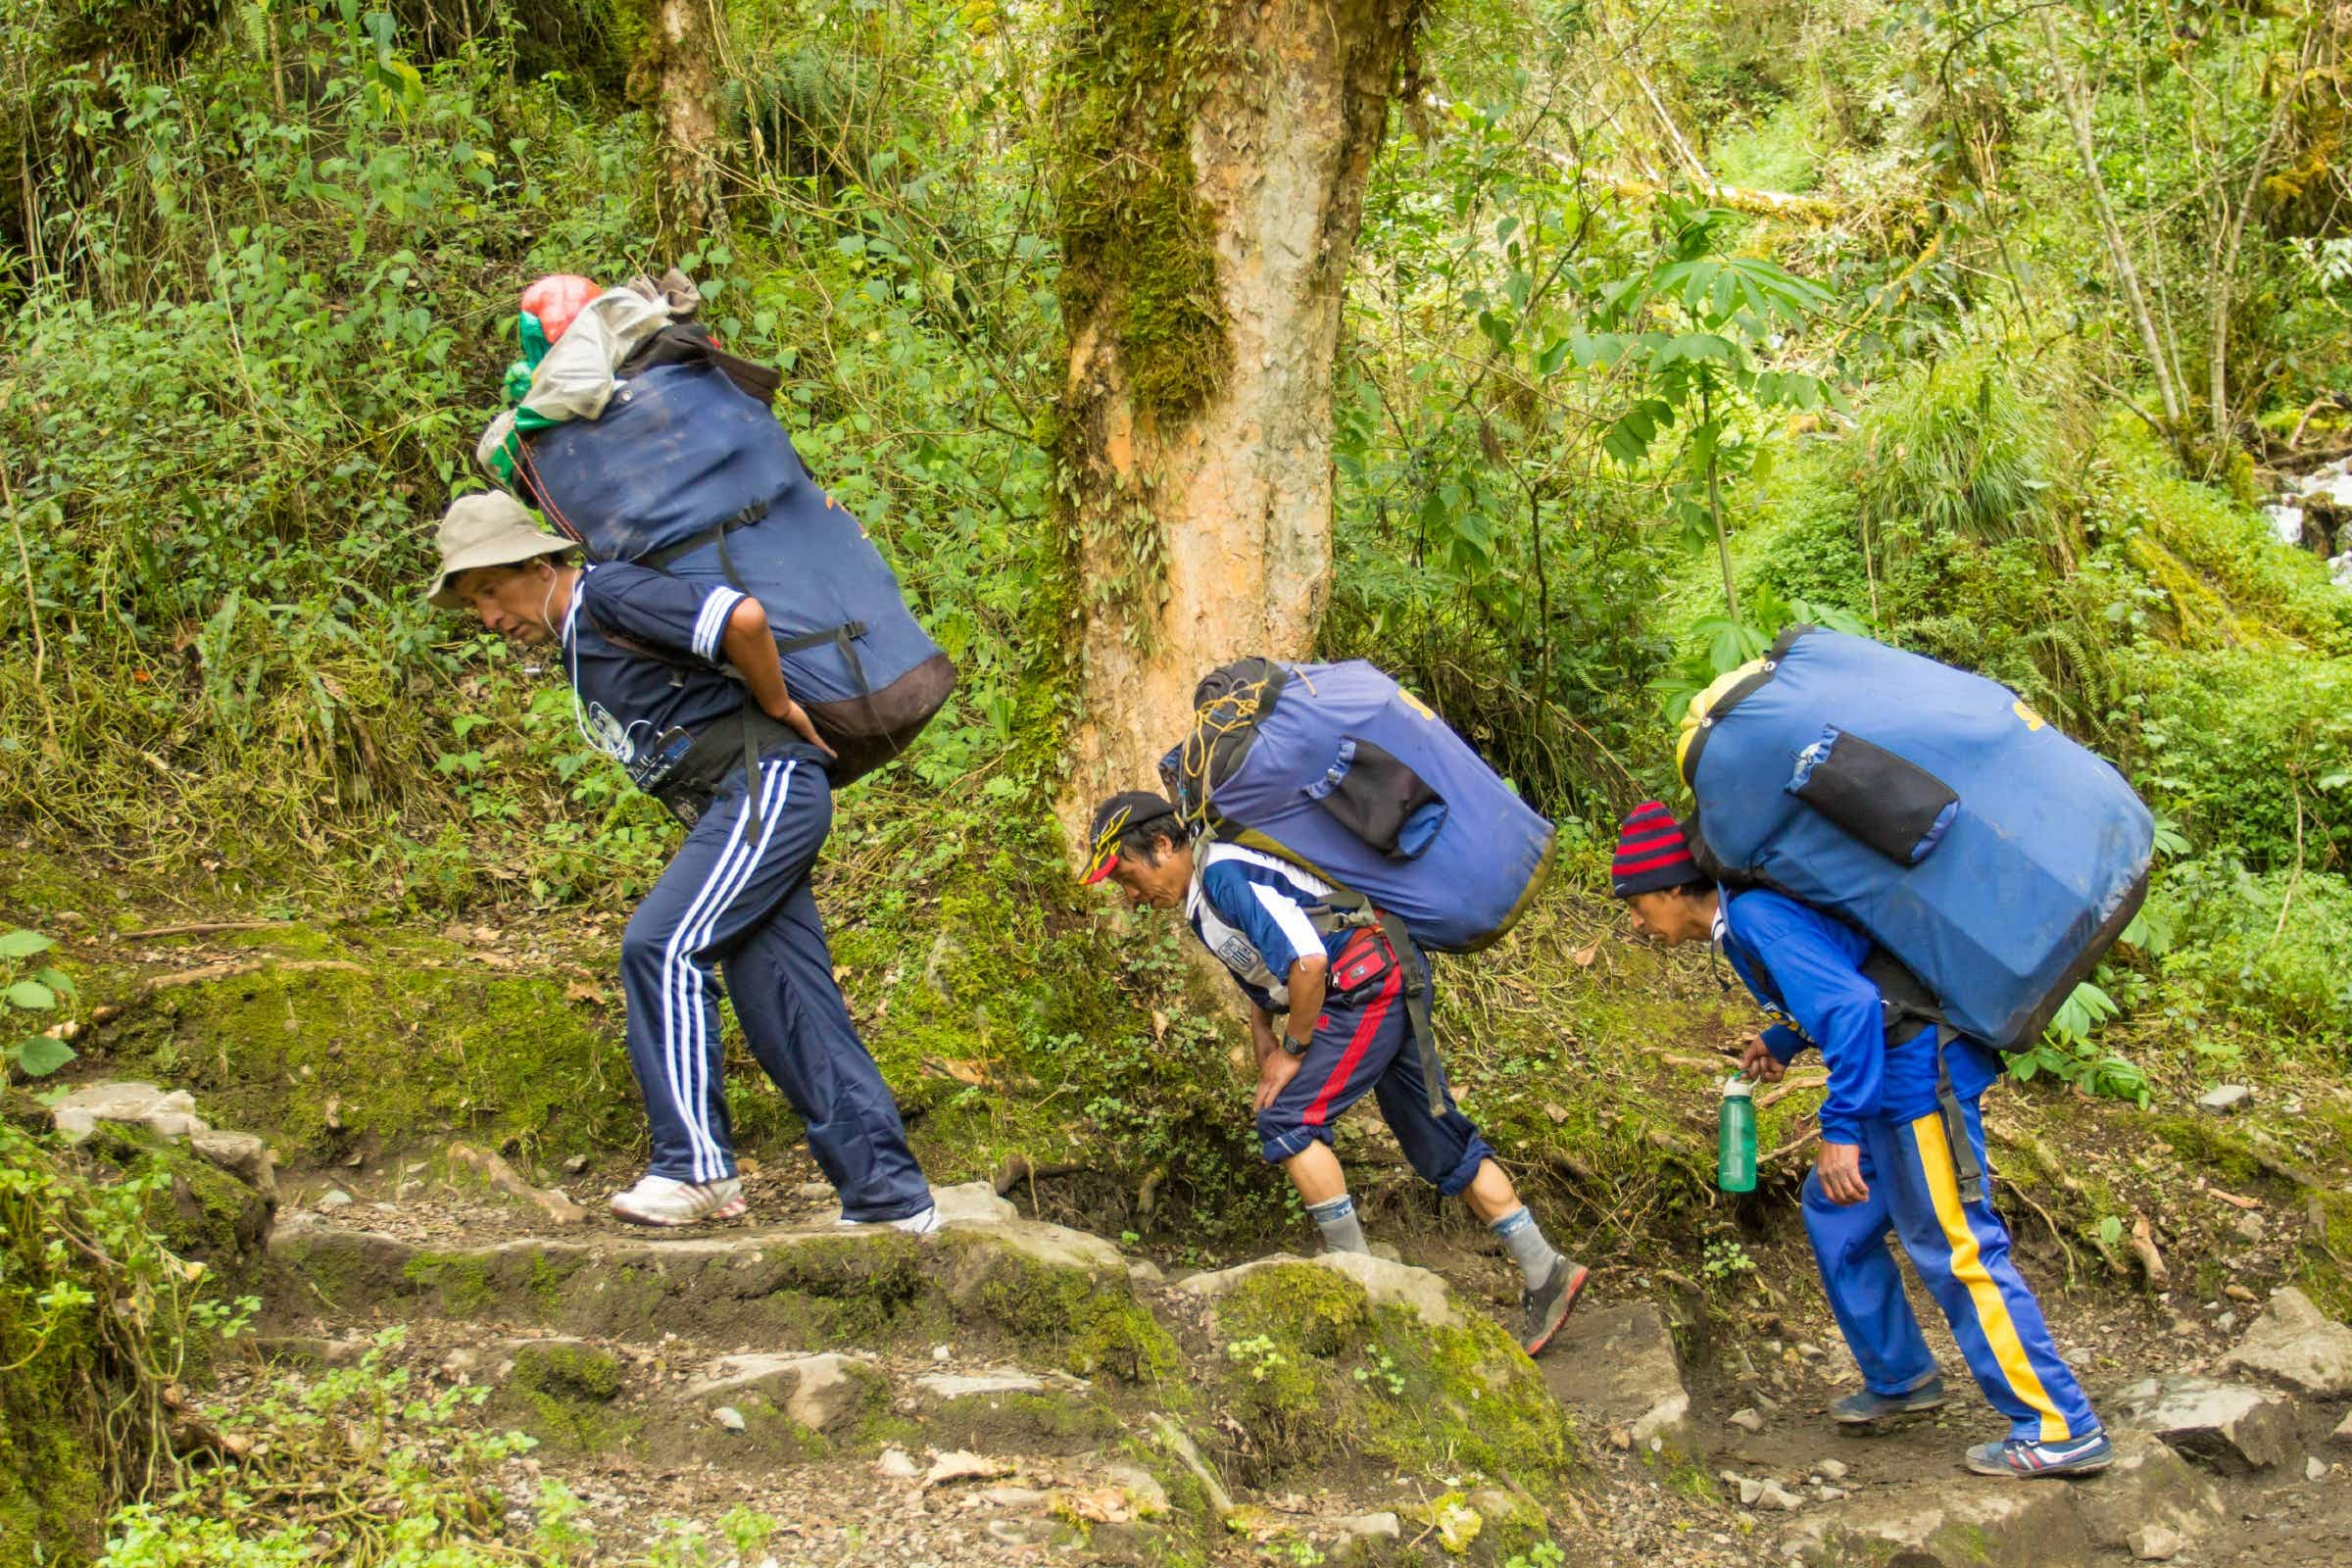 11 March, 2016: Peruvian porters with loaded packs carrying camping gear for hikers on the Inca Trail.